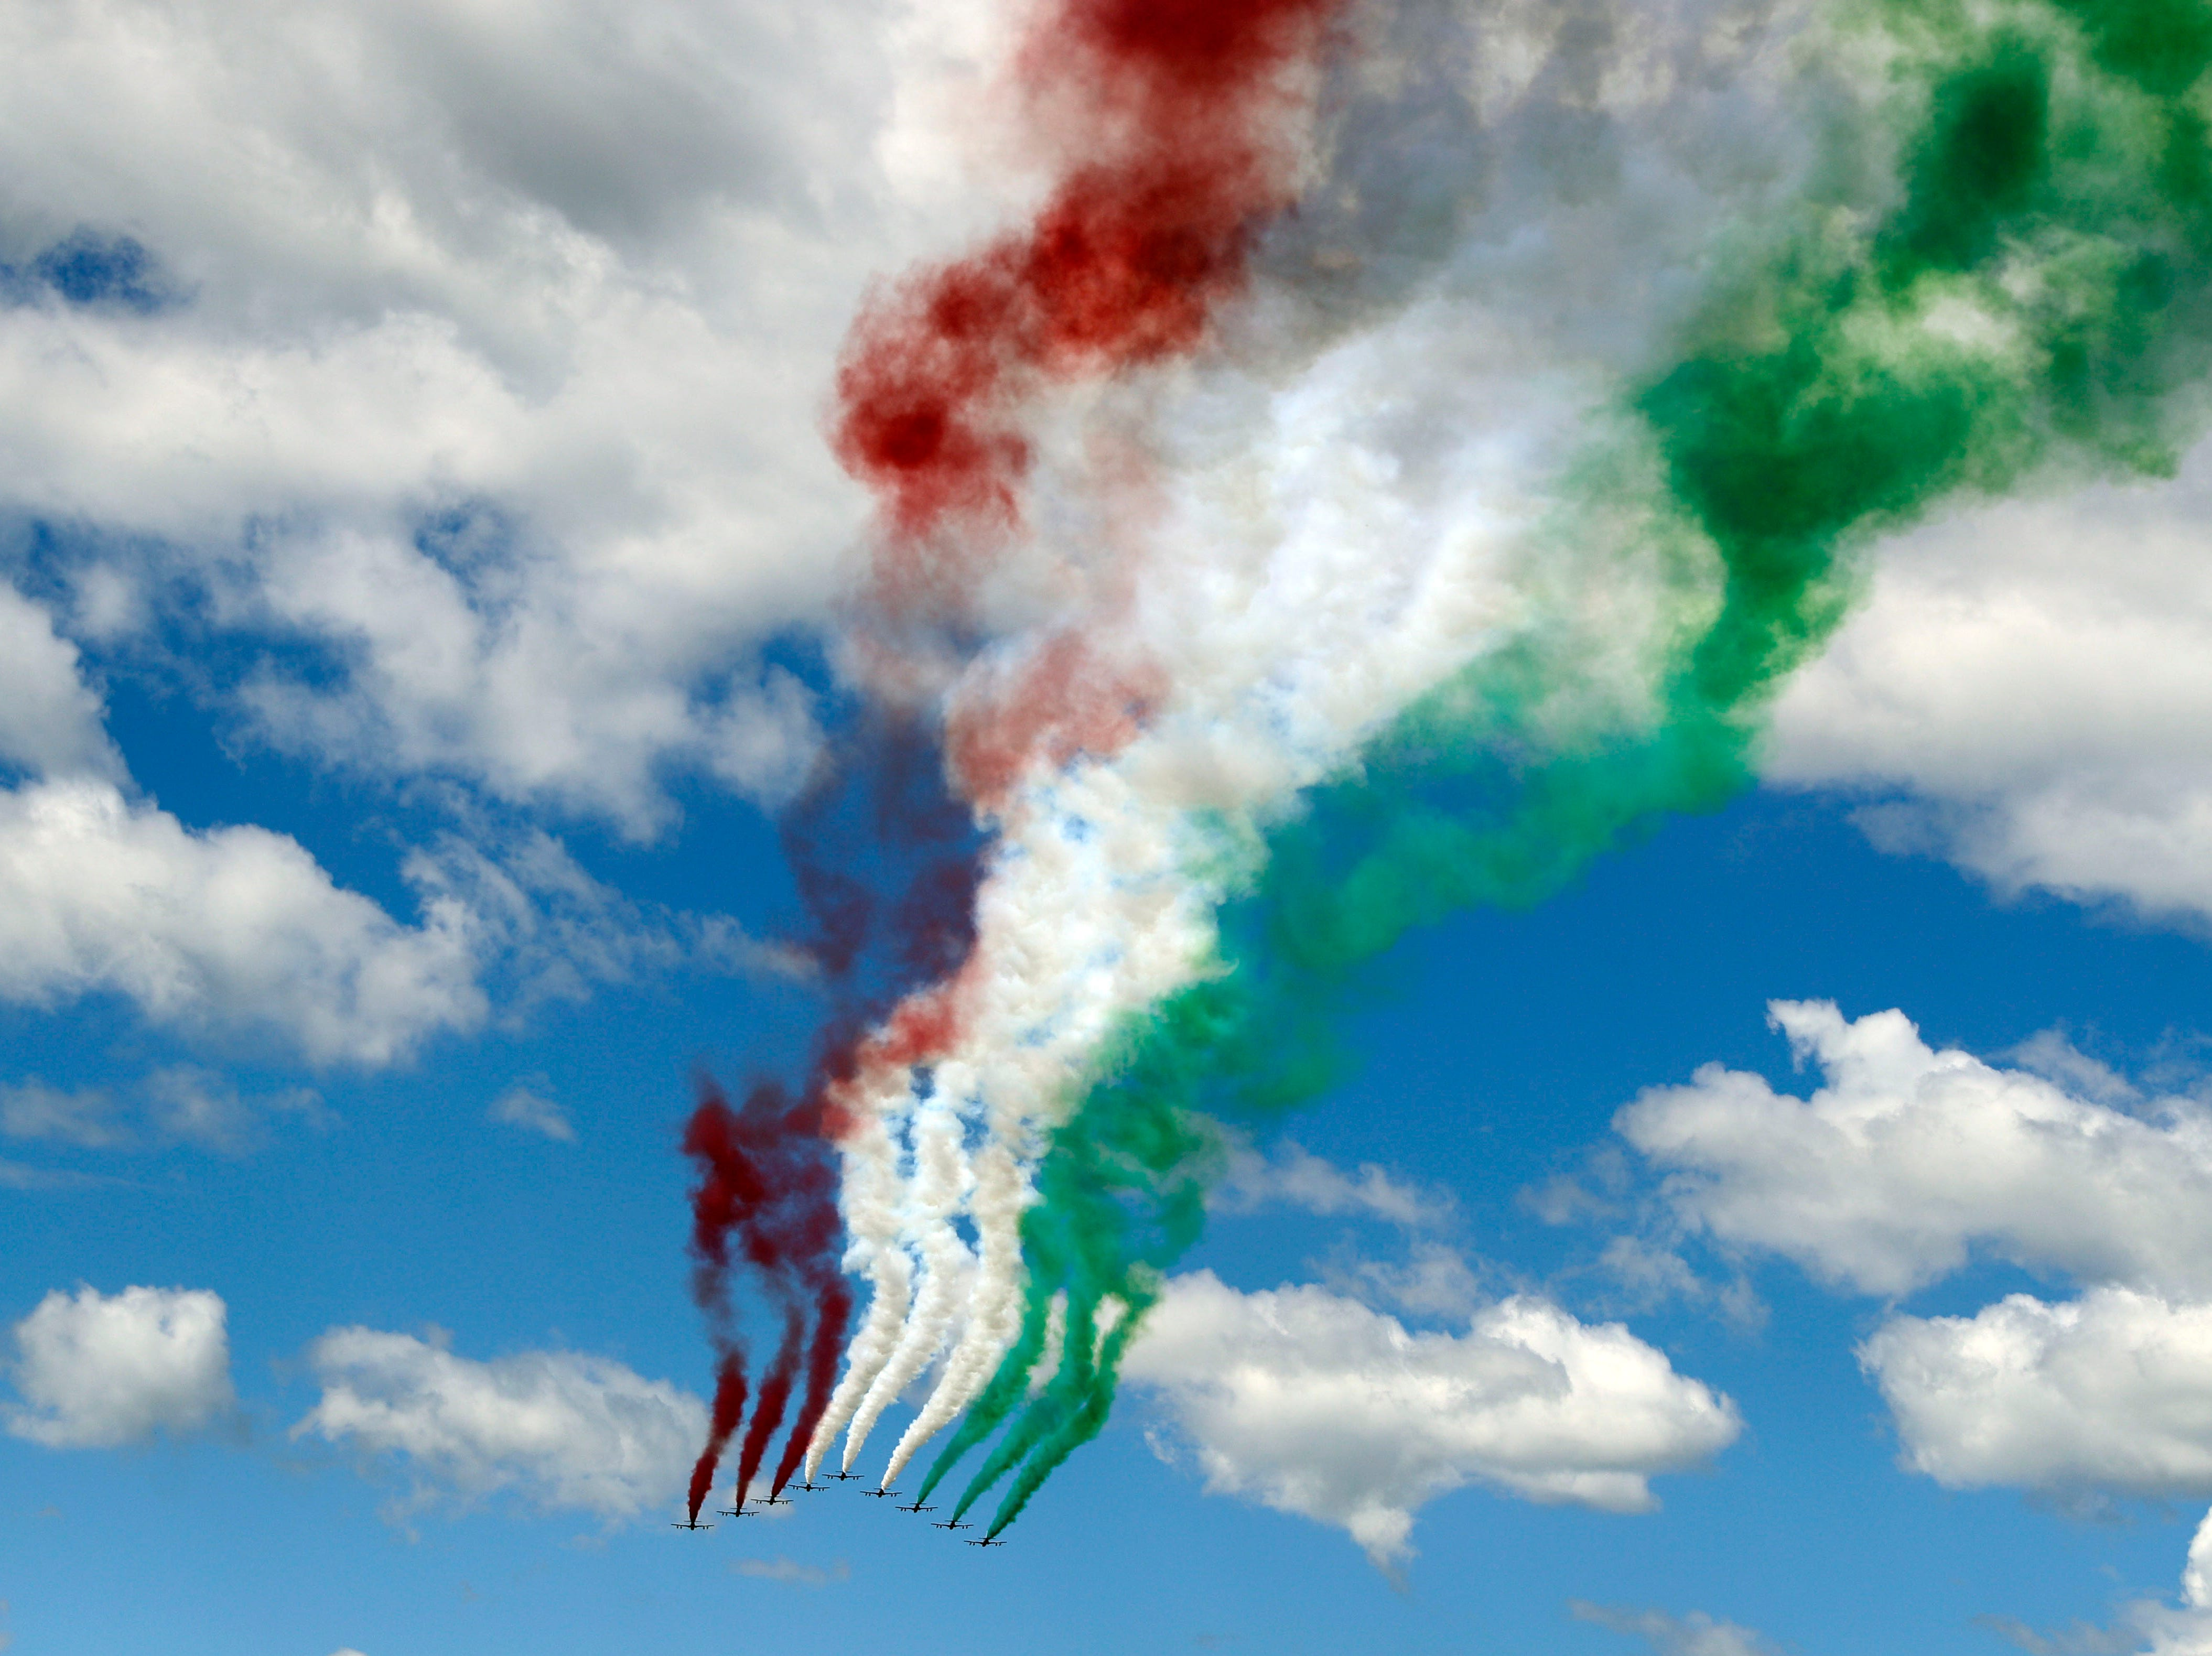 Italian aerobatics team the Tricolor Arrows fly over the central court stadium during the Italian Open tennis tournament, in Rome, Thursday, May, 16, 2019.